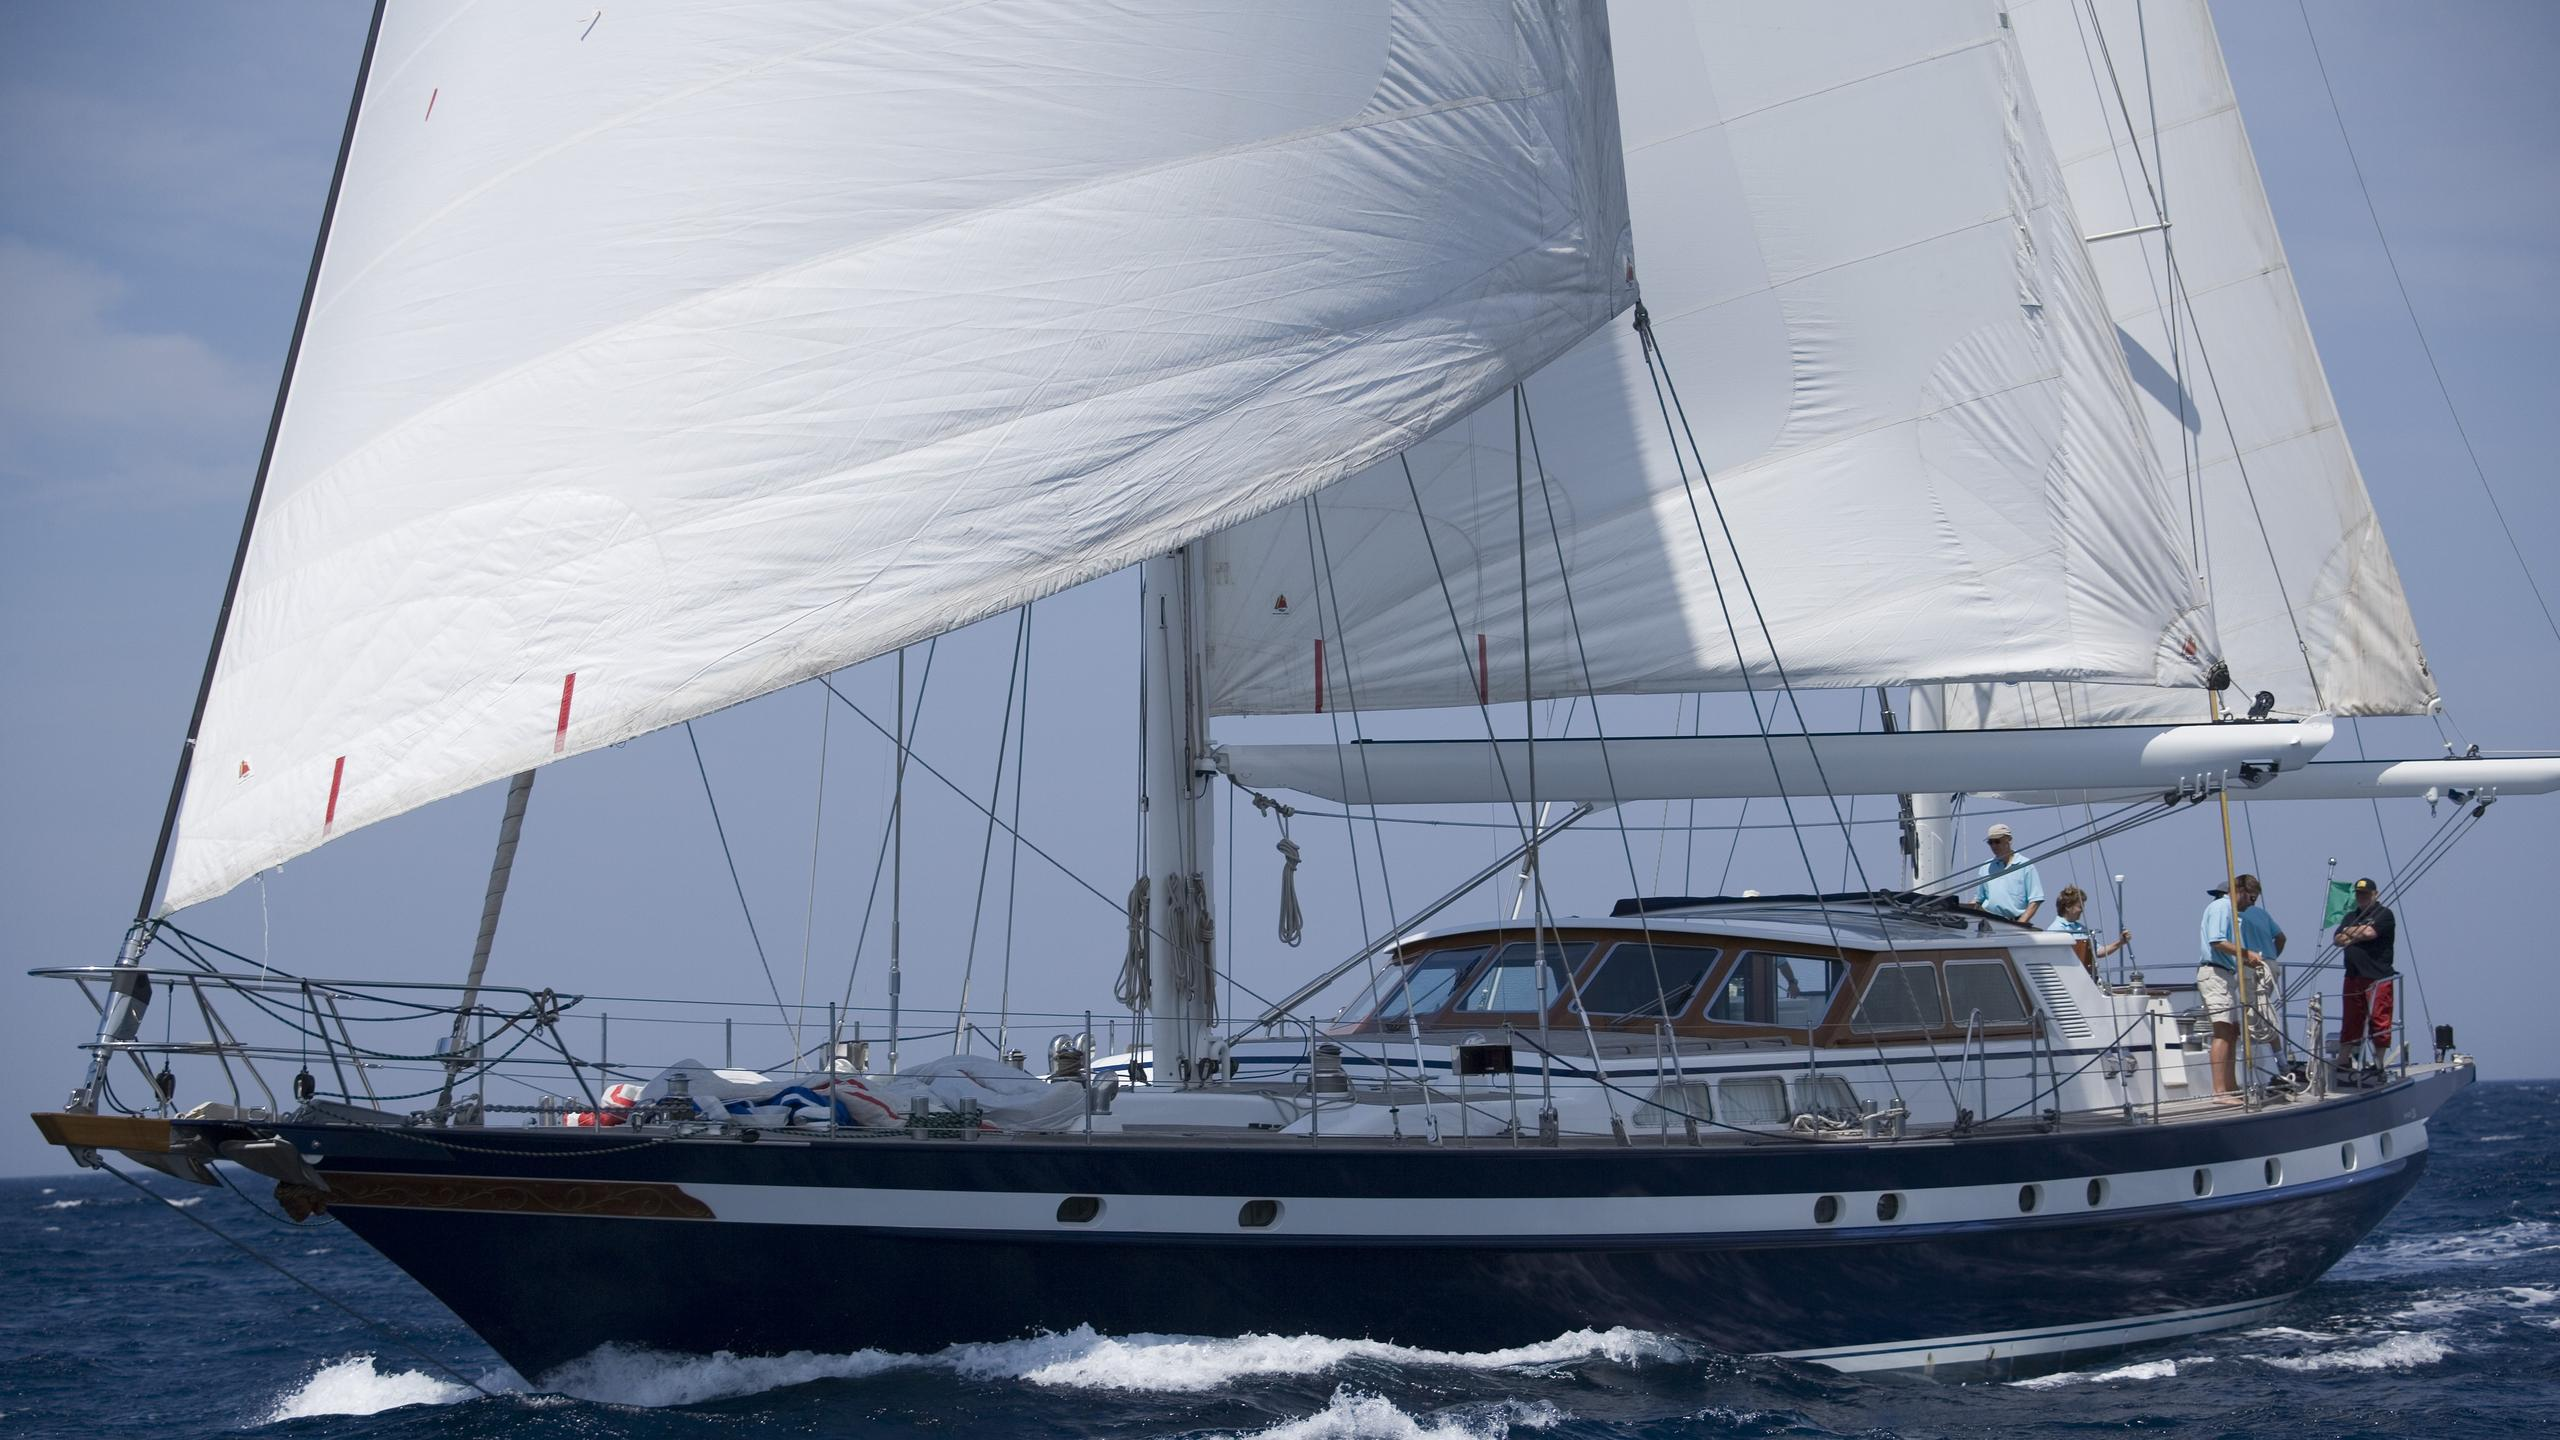 Black Molly III yacht sailing